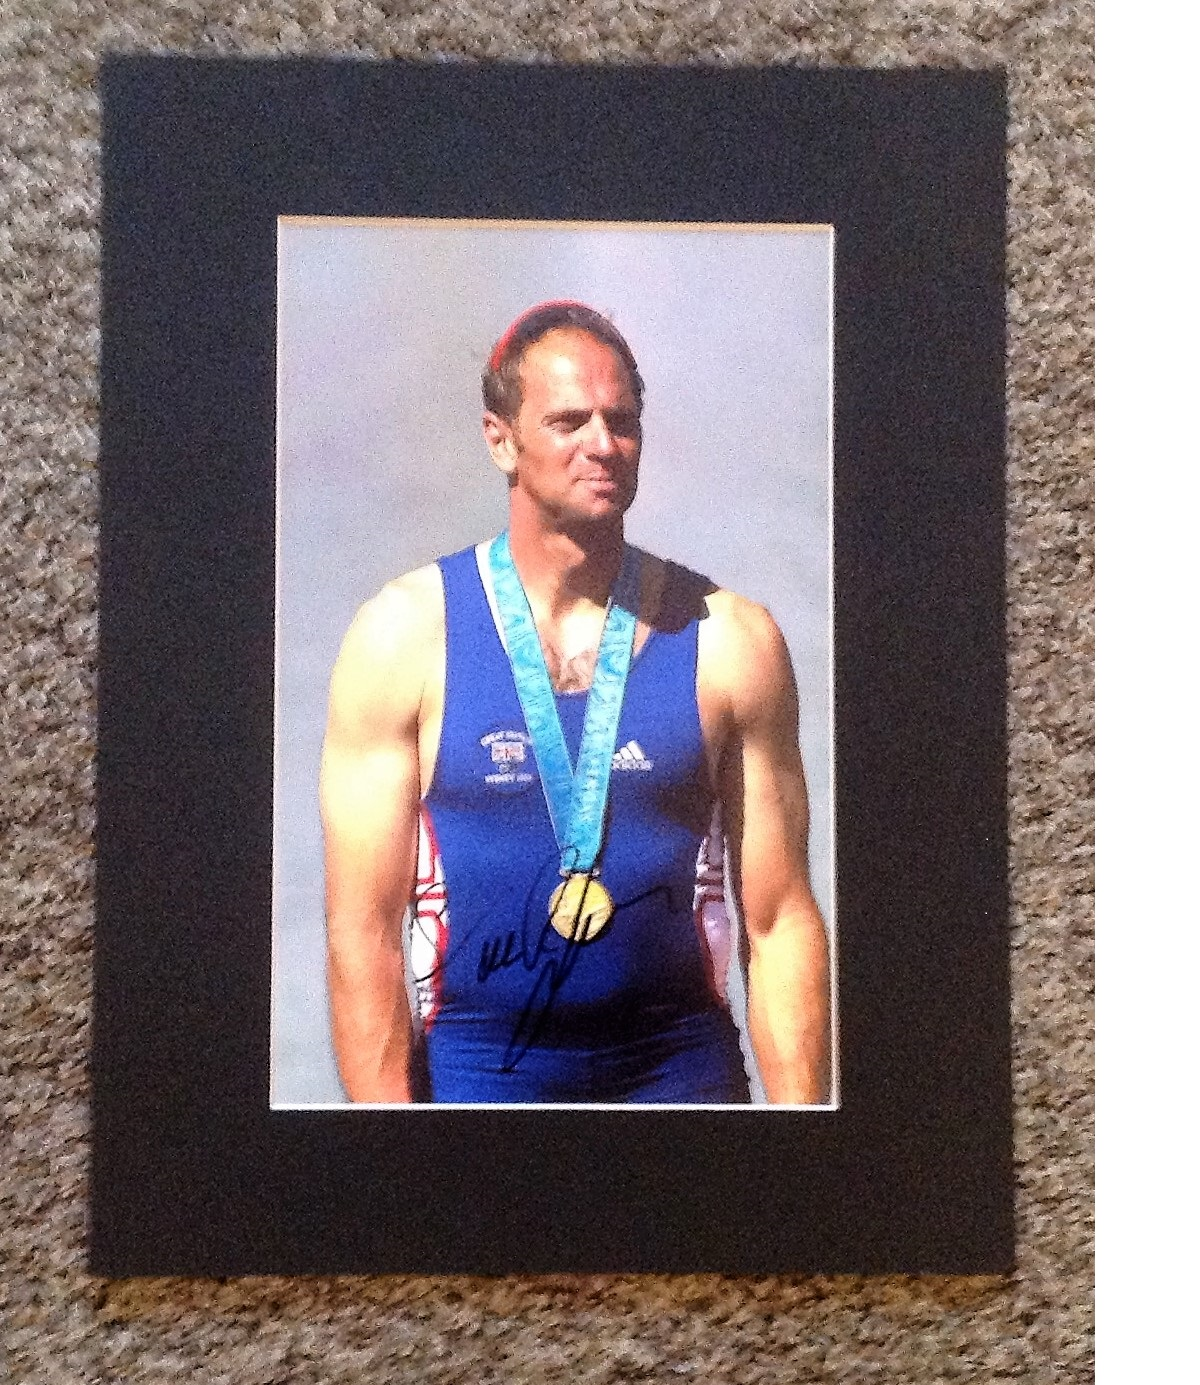 Lot 746 - Olympics Steve Redgrave signed 16 x 12 inch mounted colour photo. Sir Steven Geoffrey Redgrave CBE